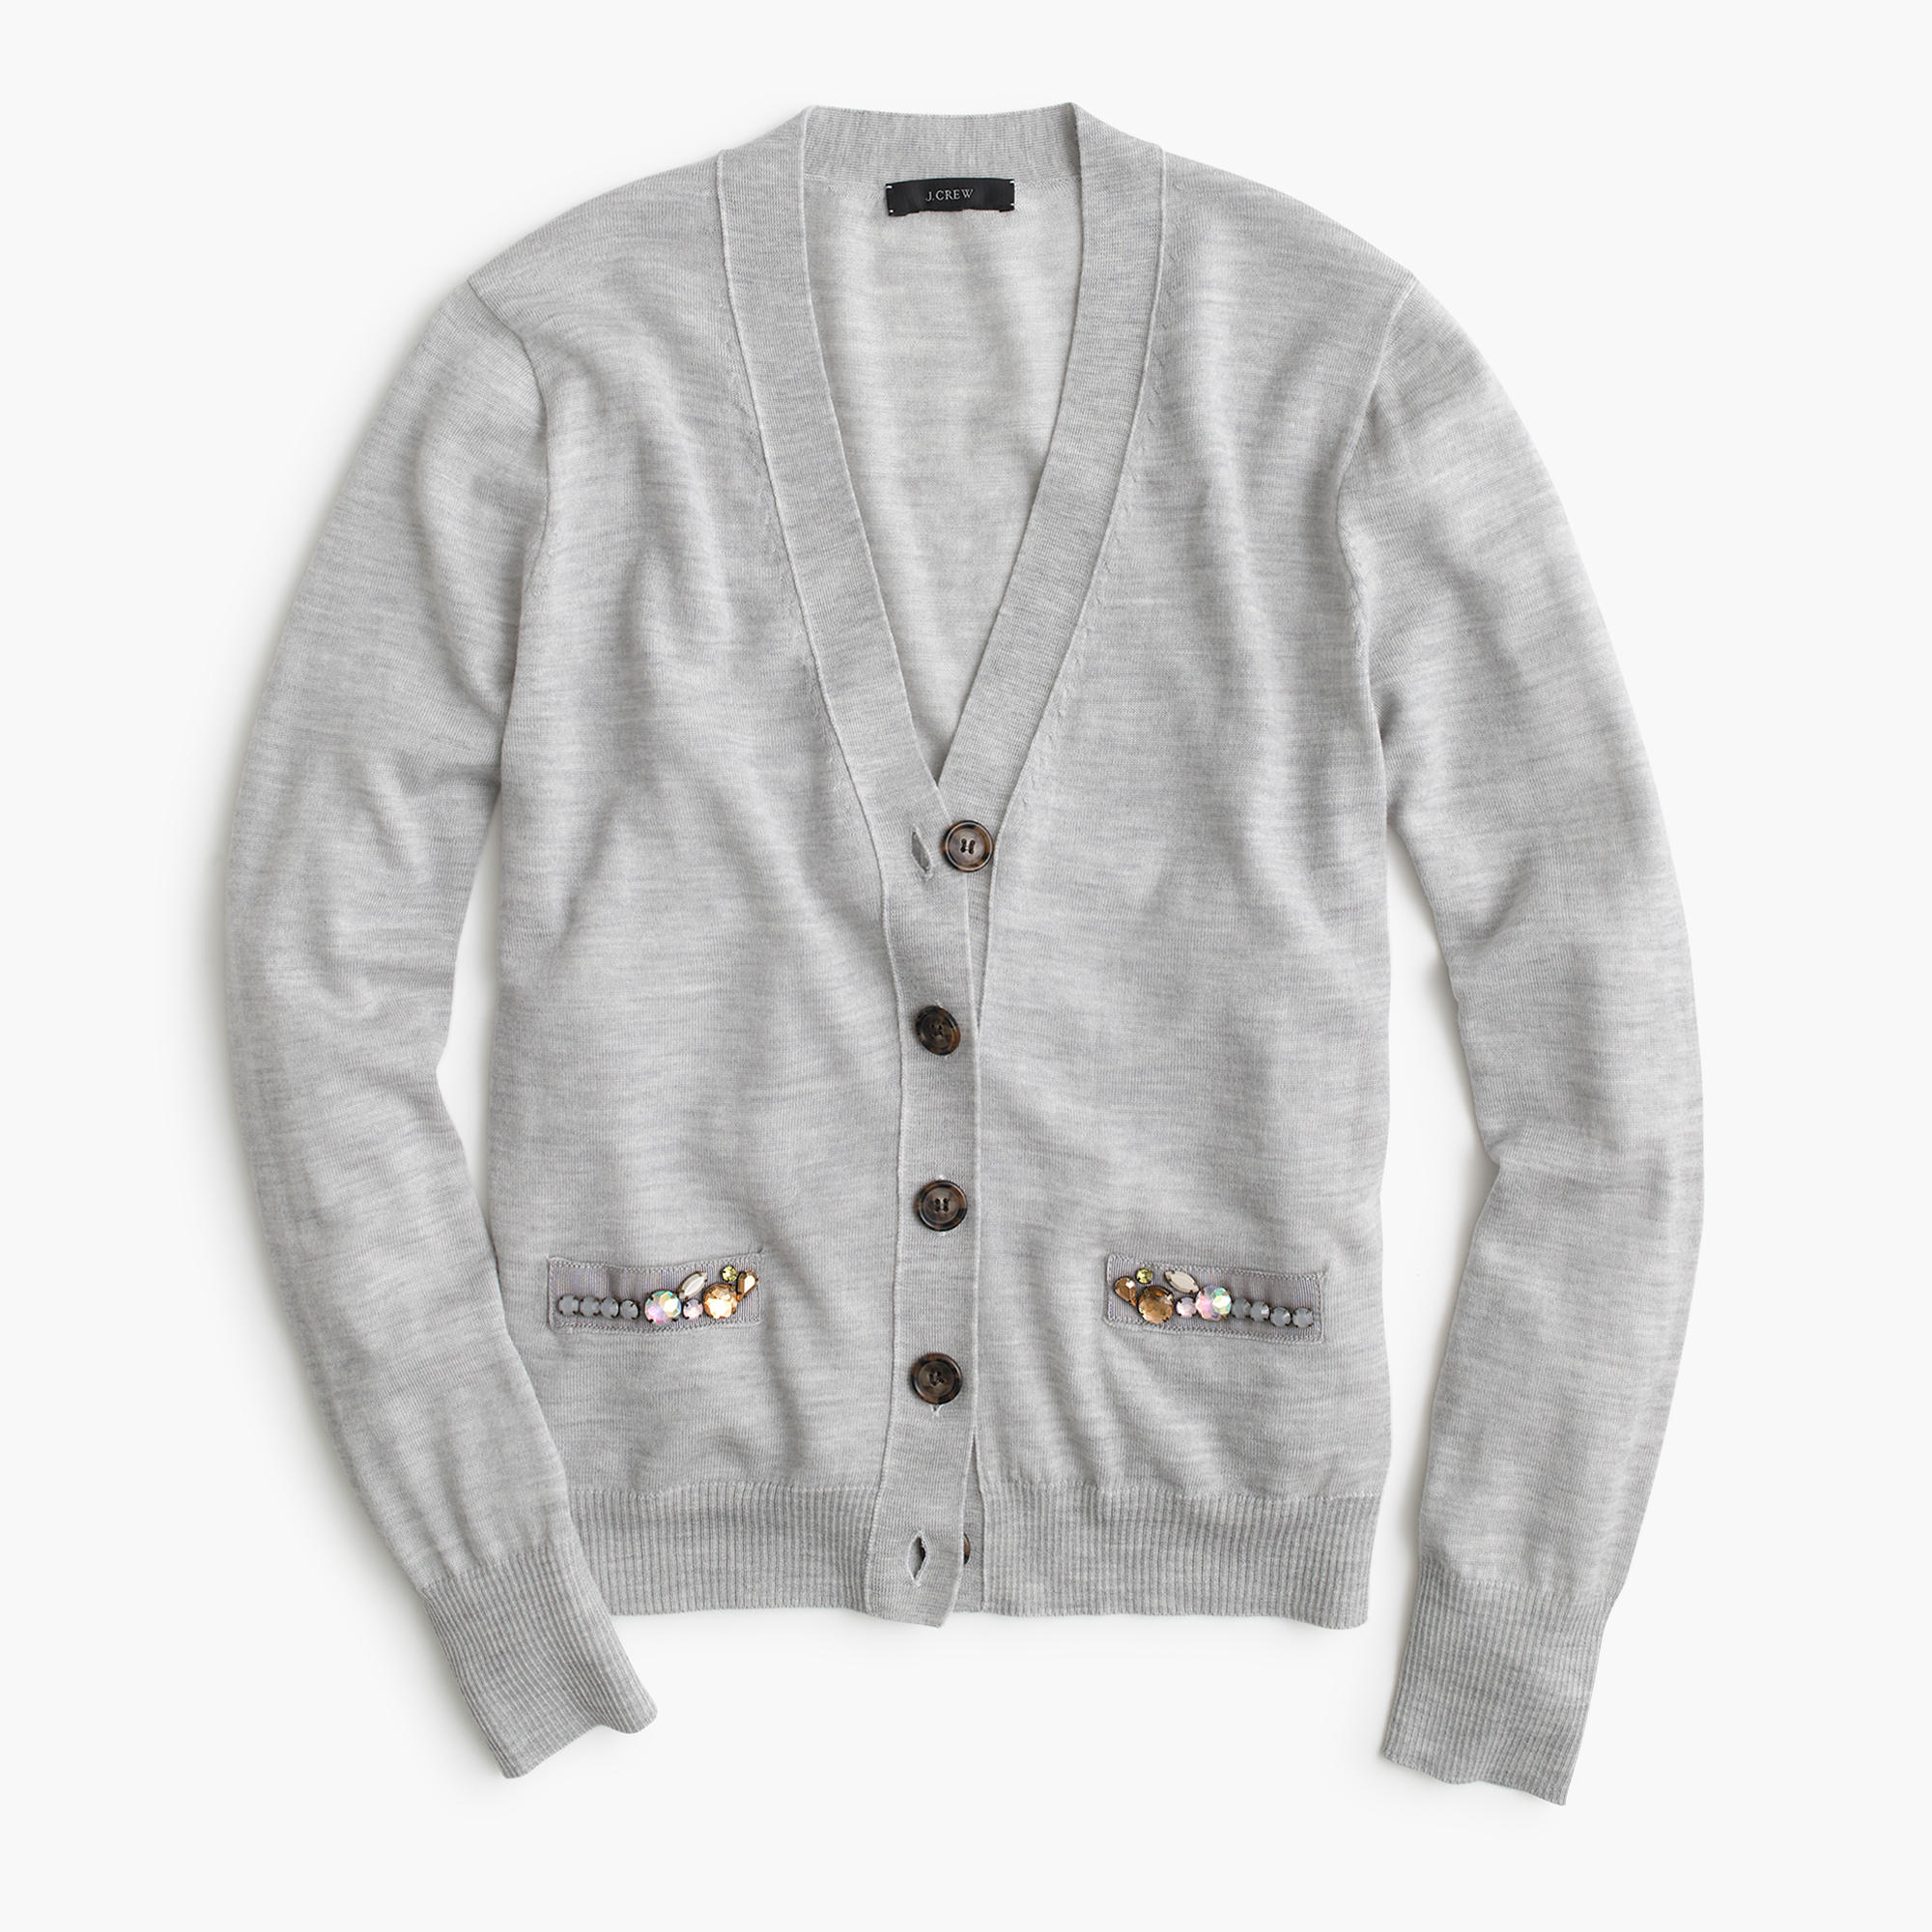 V-neck cardigan sweater with embellished pocket : | J.Crew